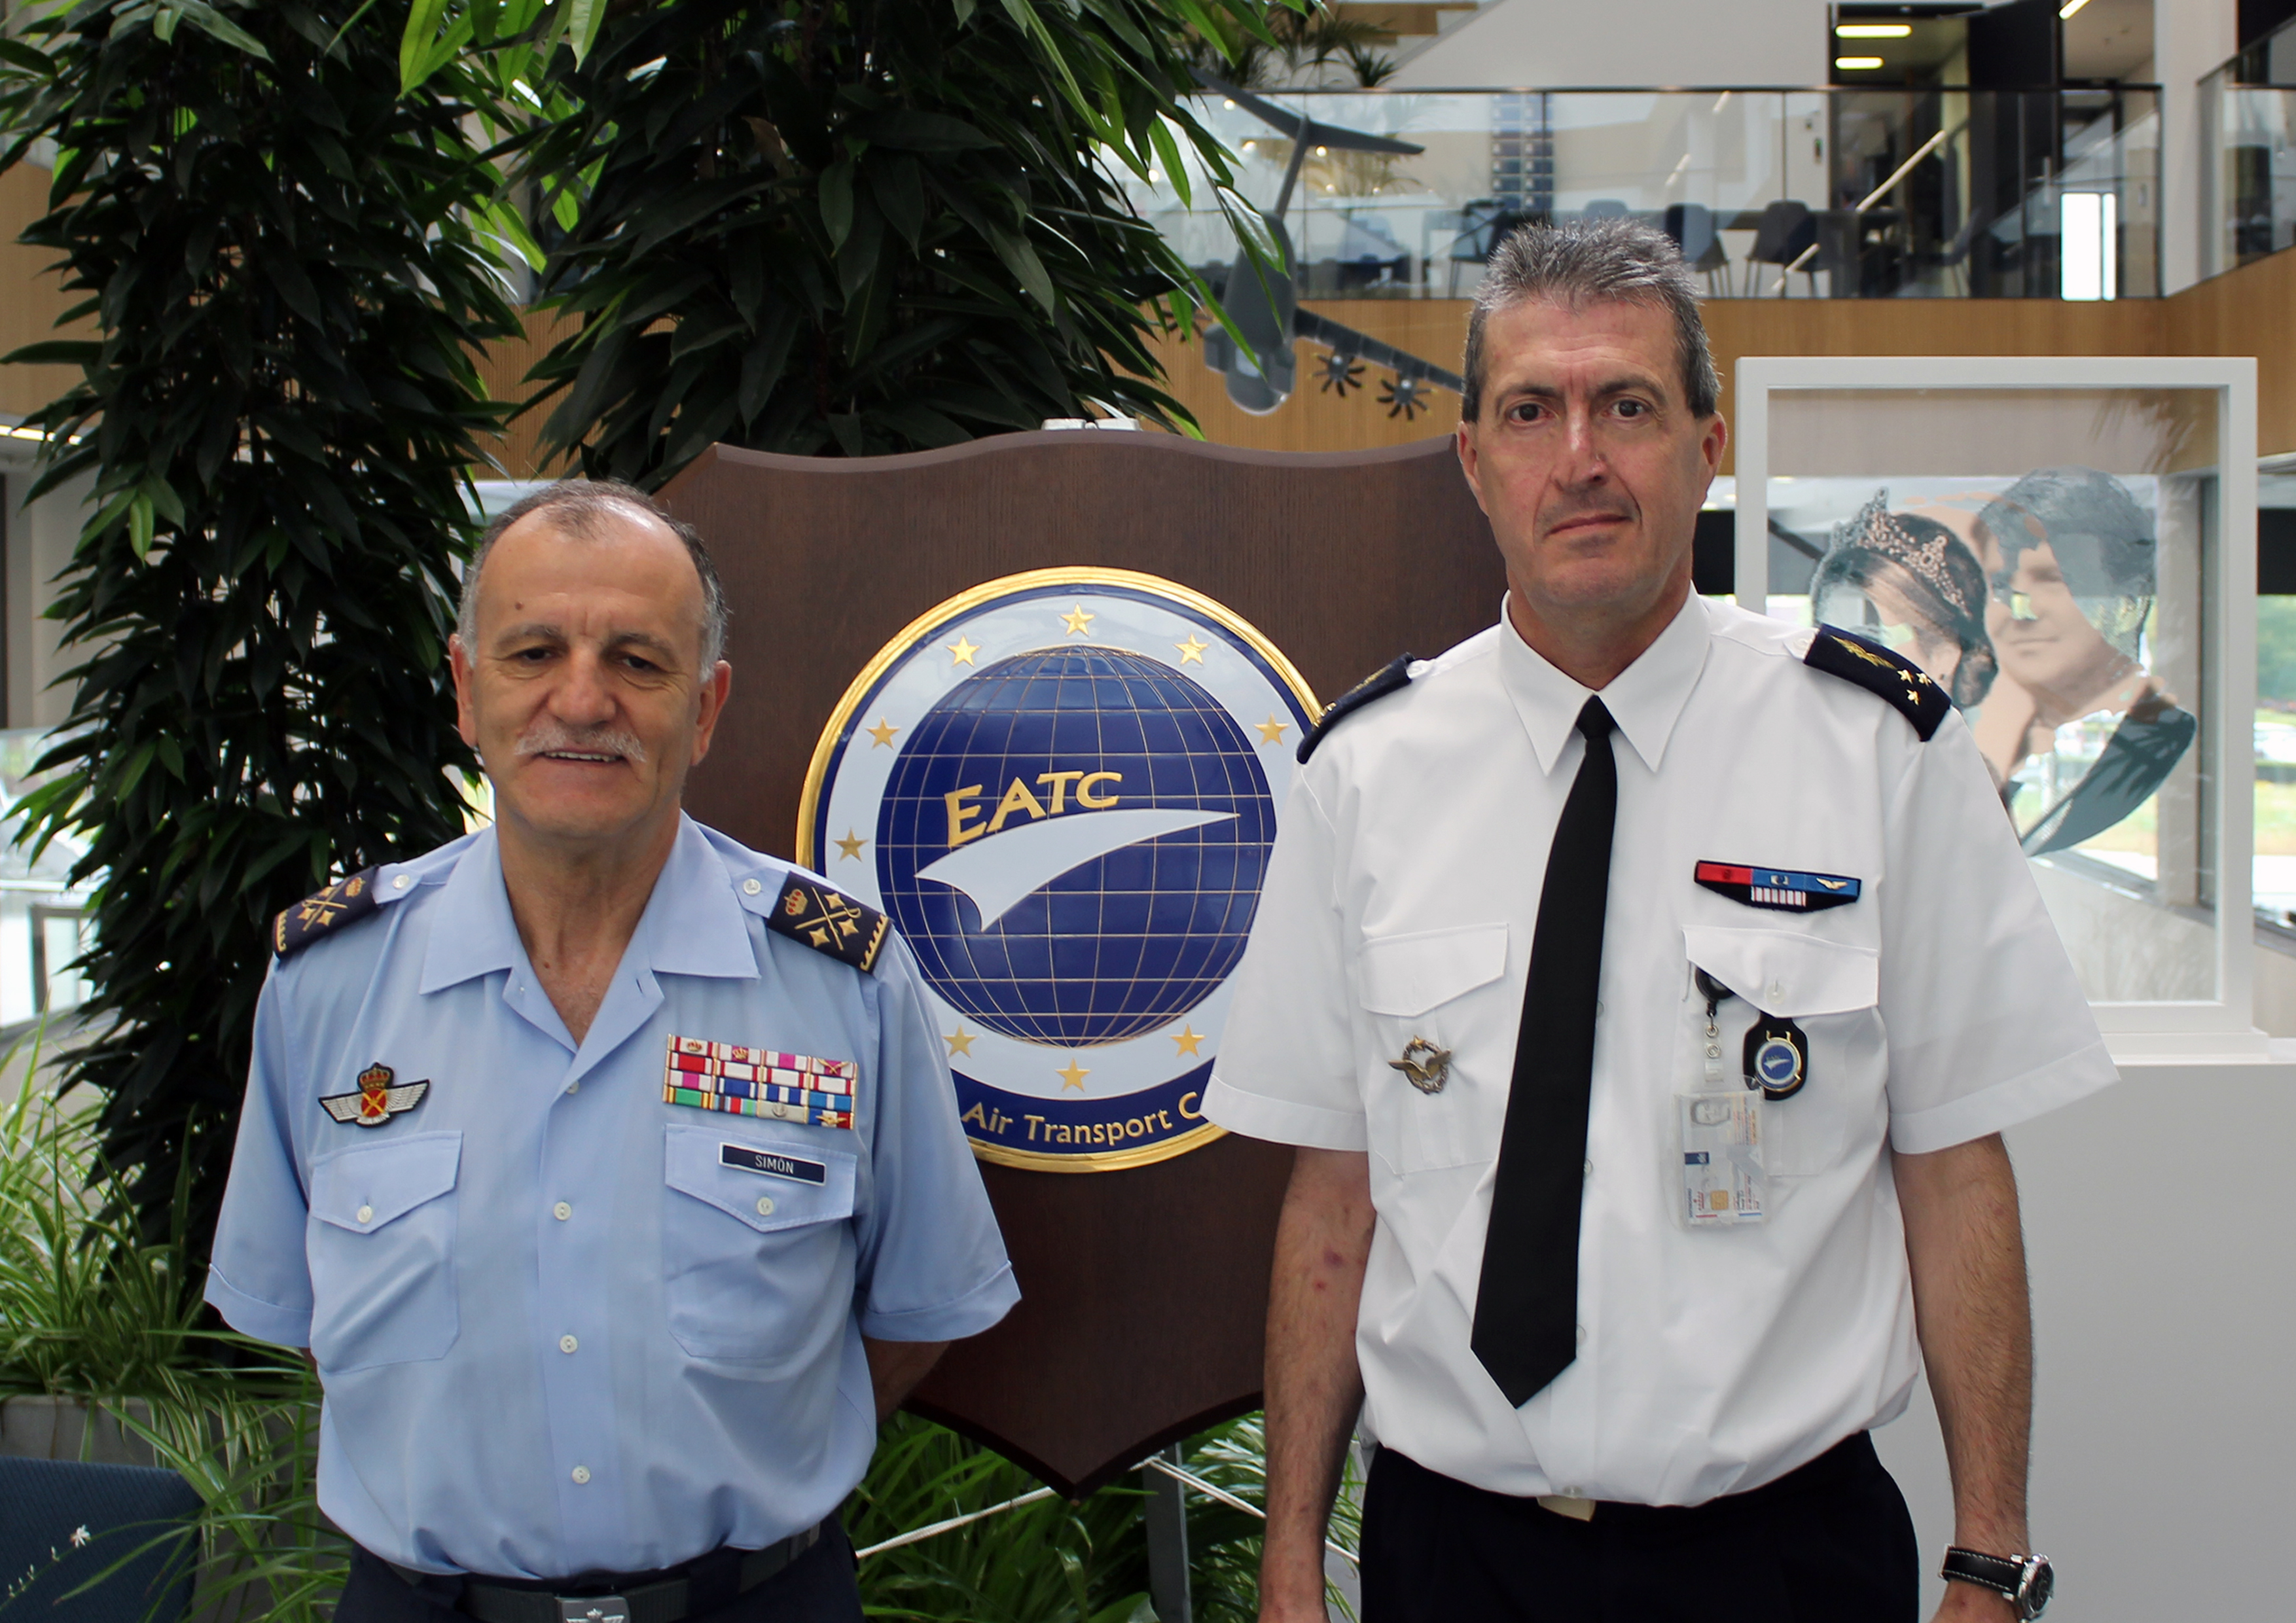 The Spanish Air Combat Commander visits EATC